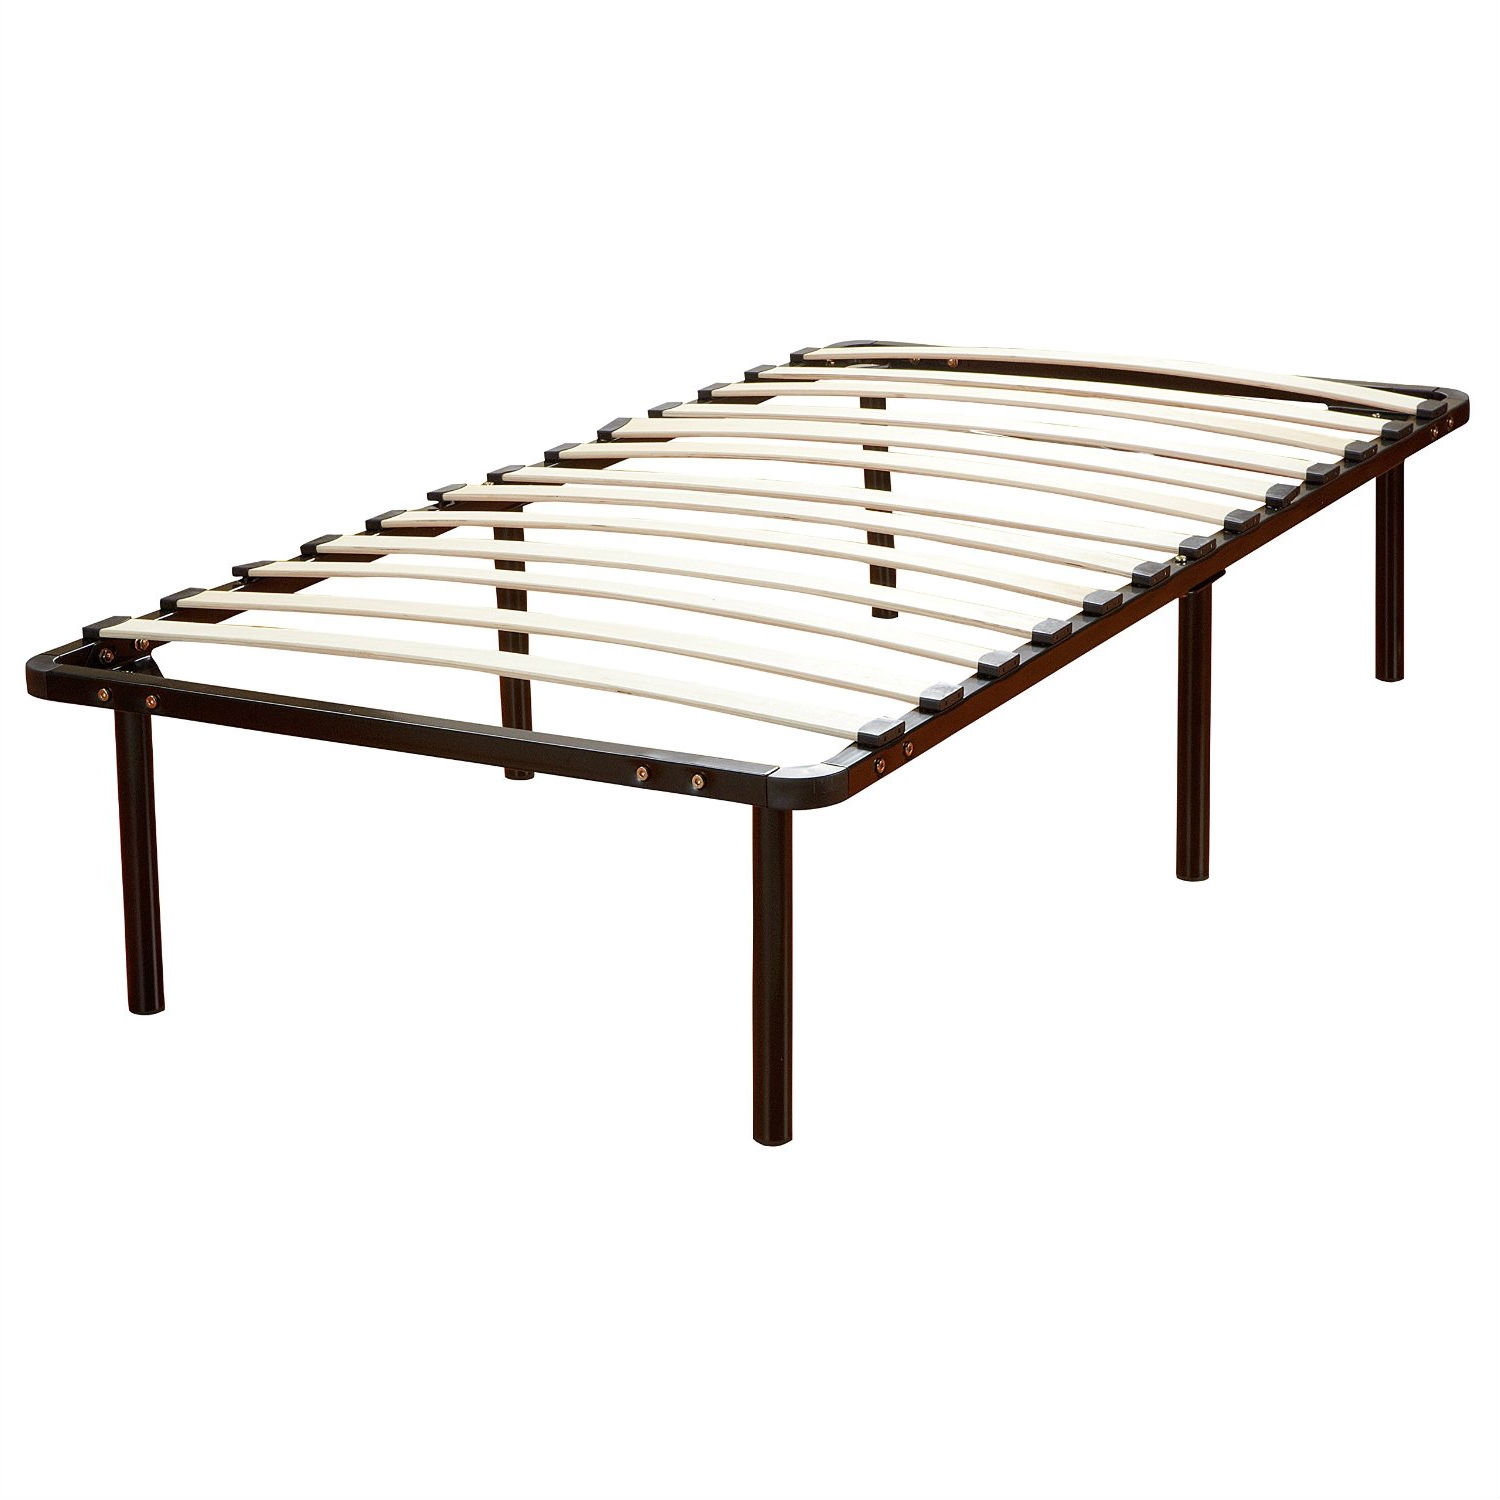 Twin size Metal Platform Bed Frame with Wooden Slats ...